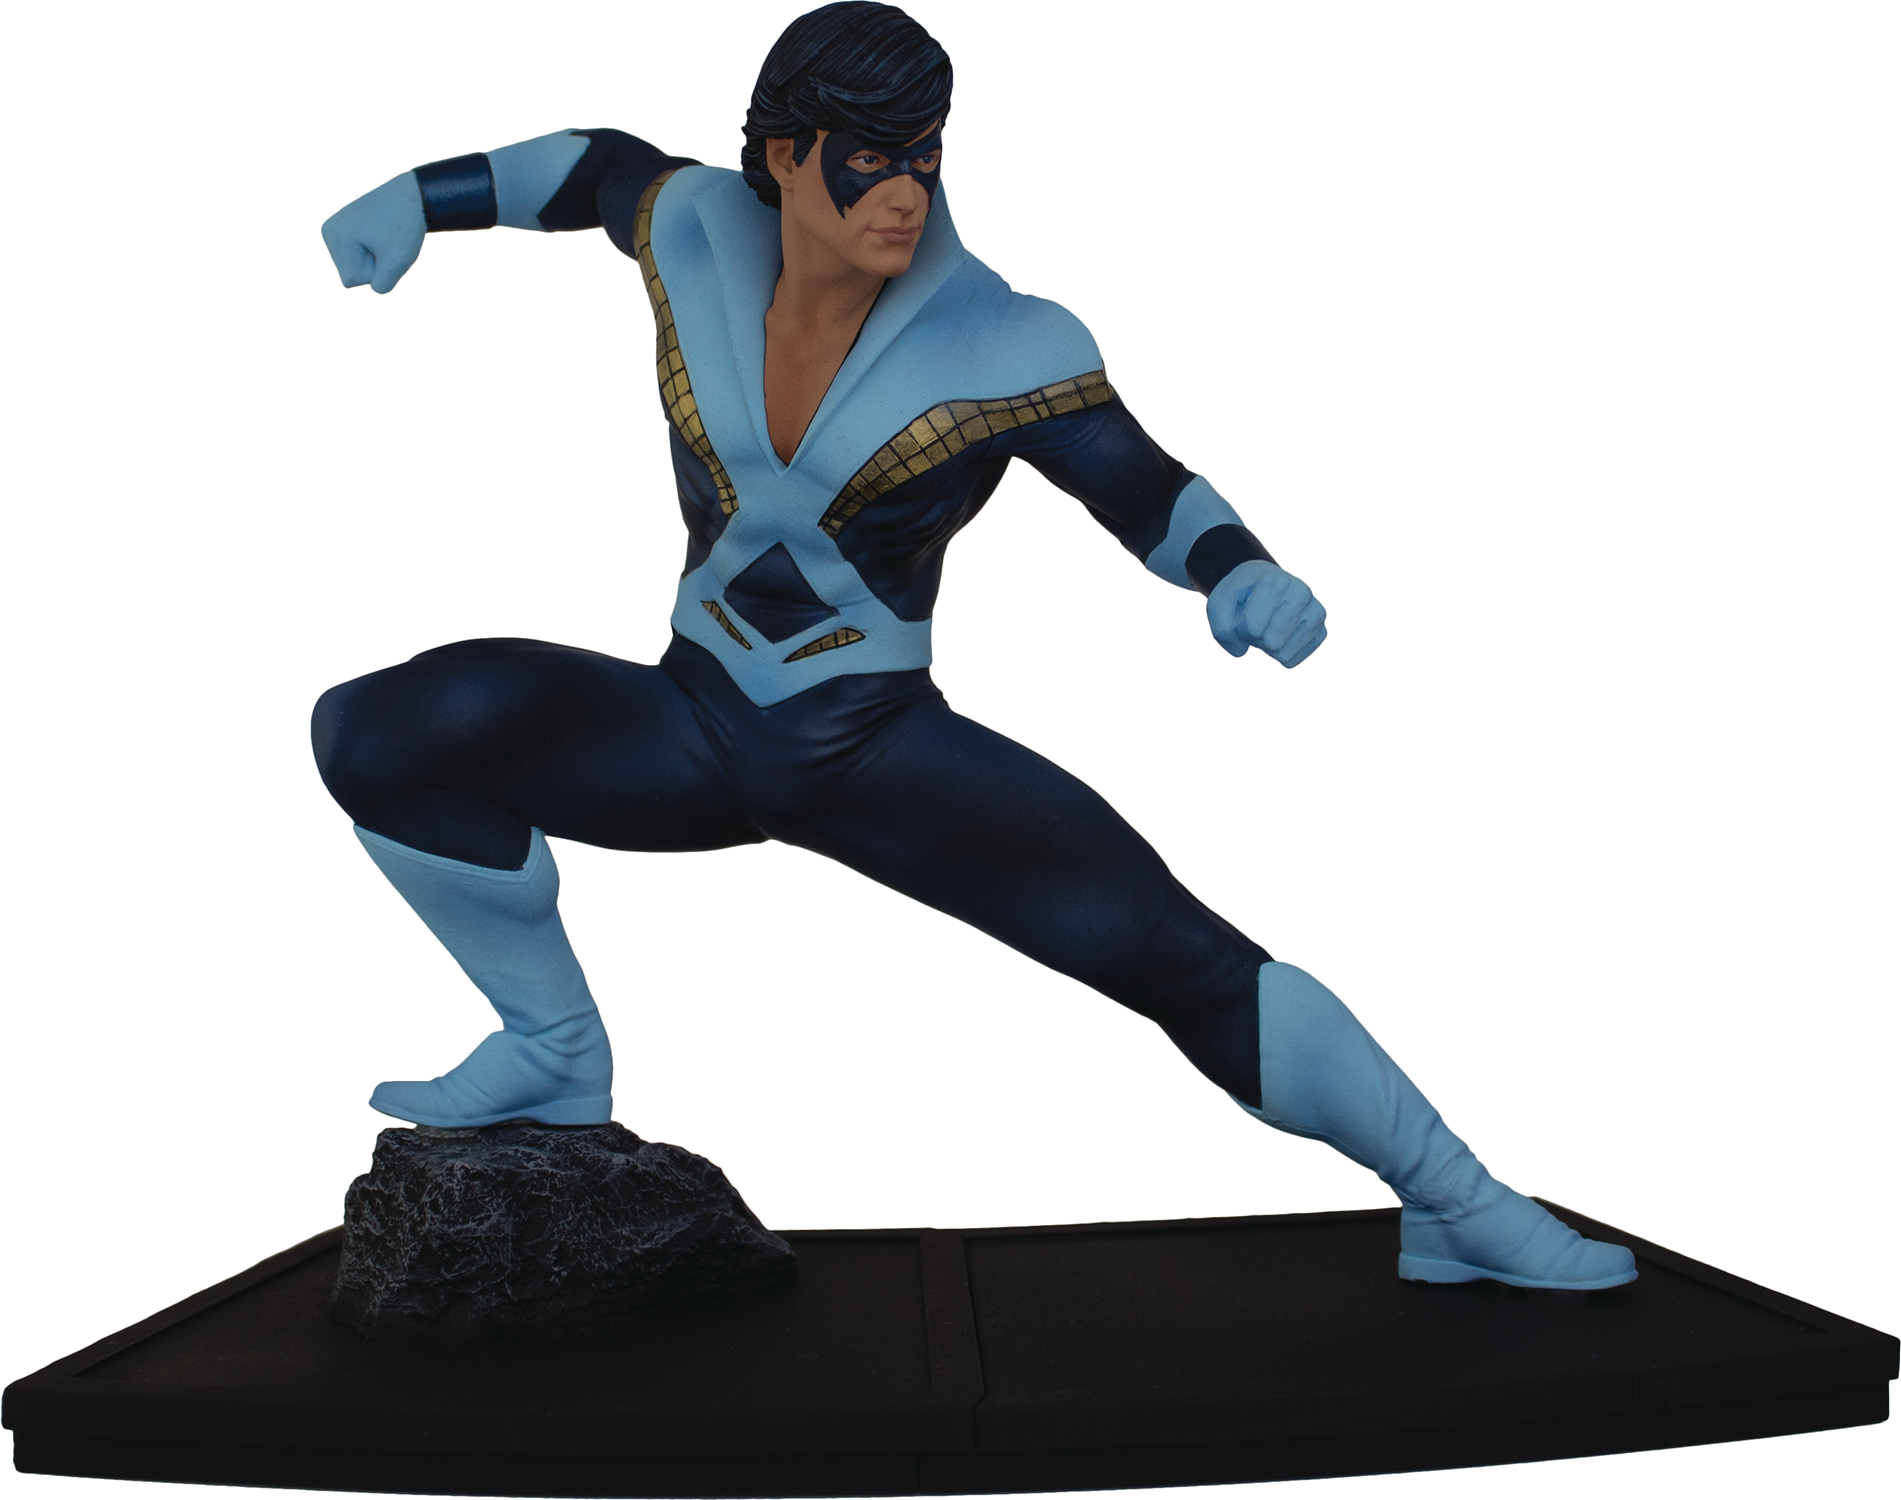 DC HEROES TEEN TITANS NIGHTWING 1/9 SCALE POLYSTONE STATUE (